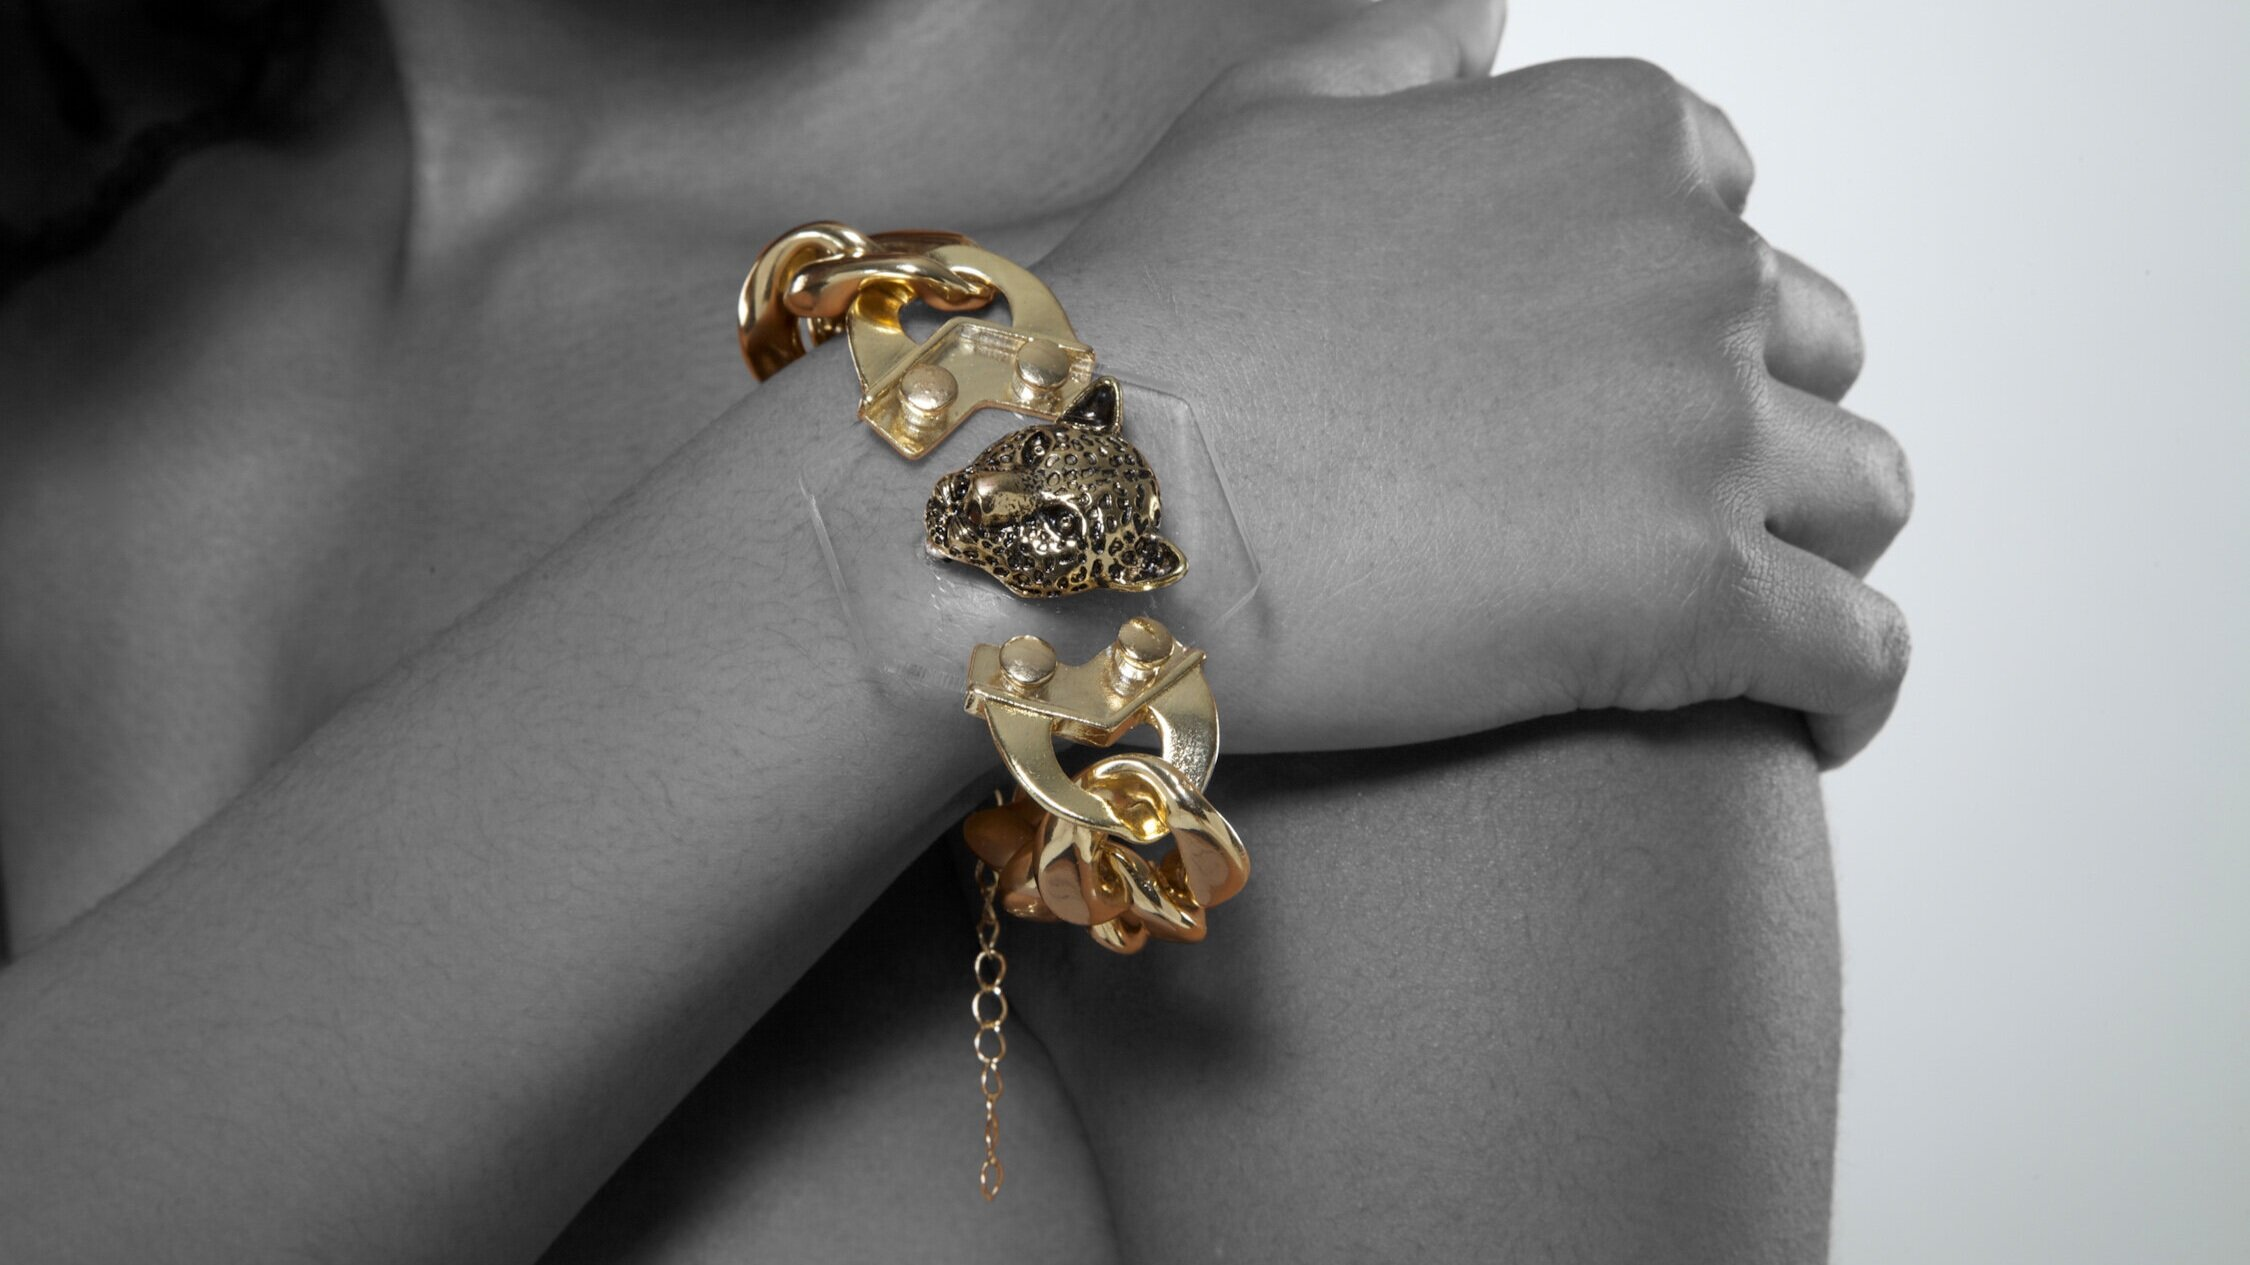 BRACELETS - Brace yourself for these eclectic bangles, arm cuffs and chain links.